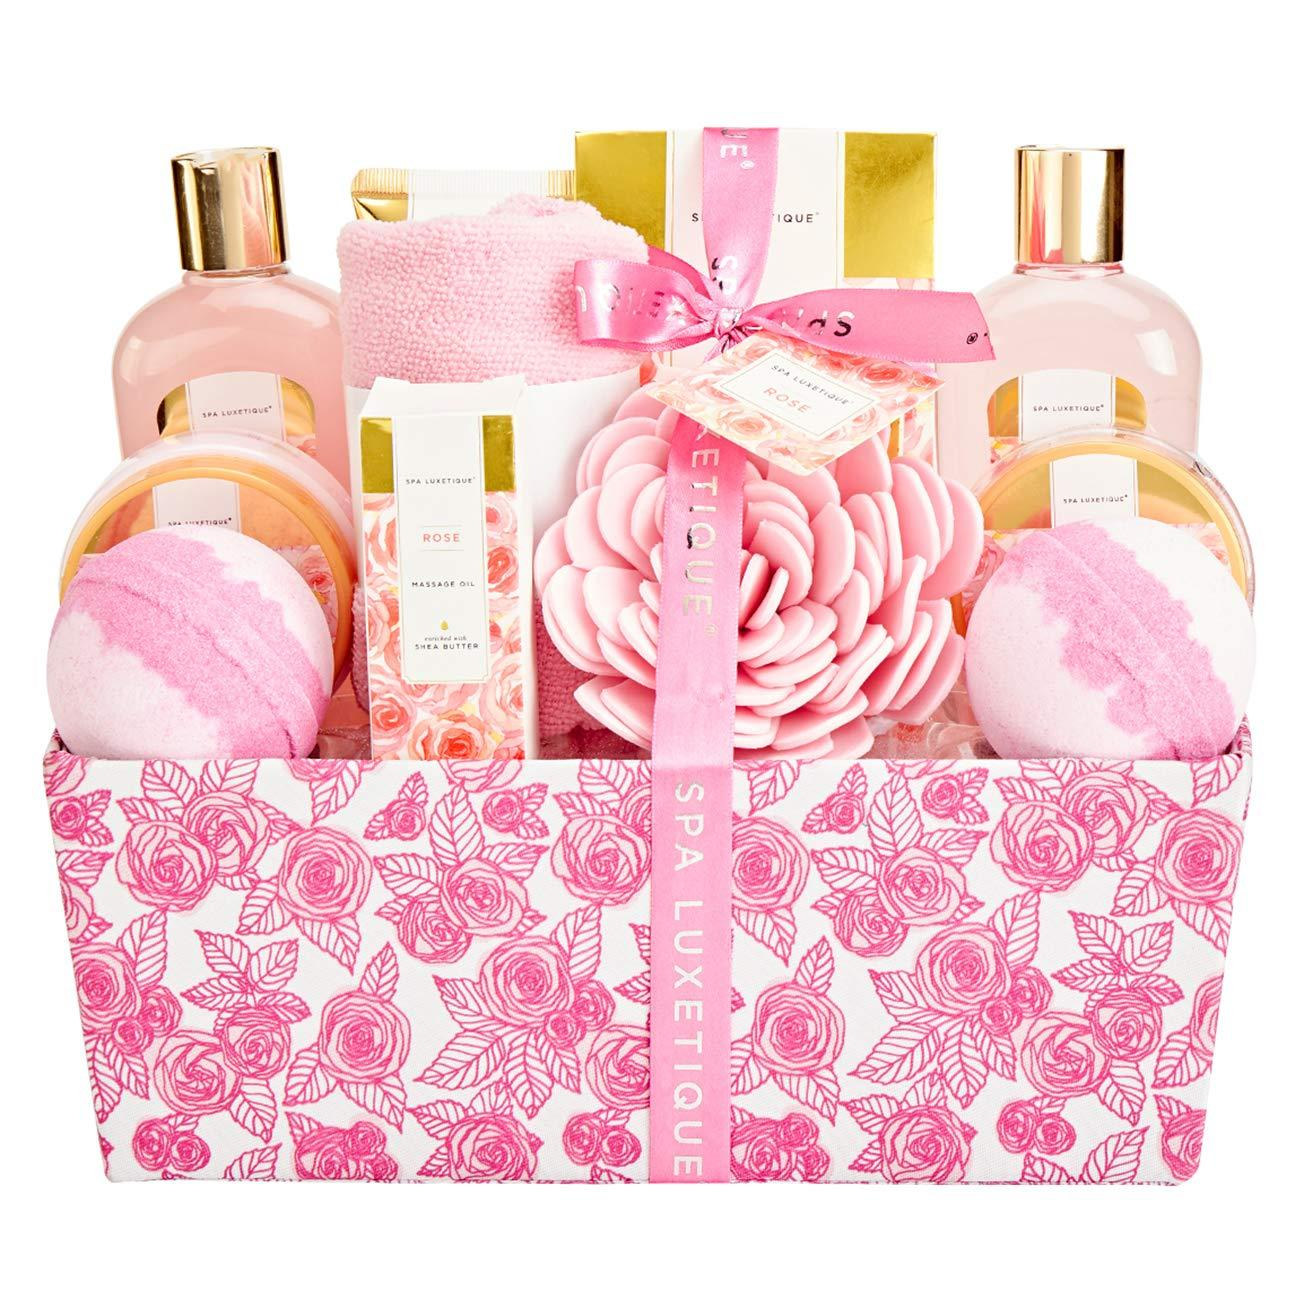 Spa Luxetique Bath Gift Basket Rose Spa Gift Baskets For Women Pamper Gift Set Gift Box For Women 12 Pcs Home Bath Set With Rose Massage Oil Bath Bomb Body Lotion Best